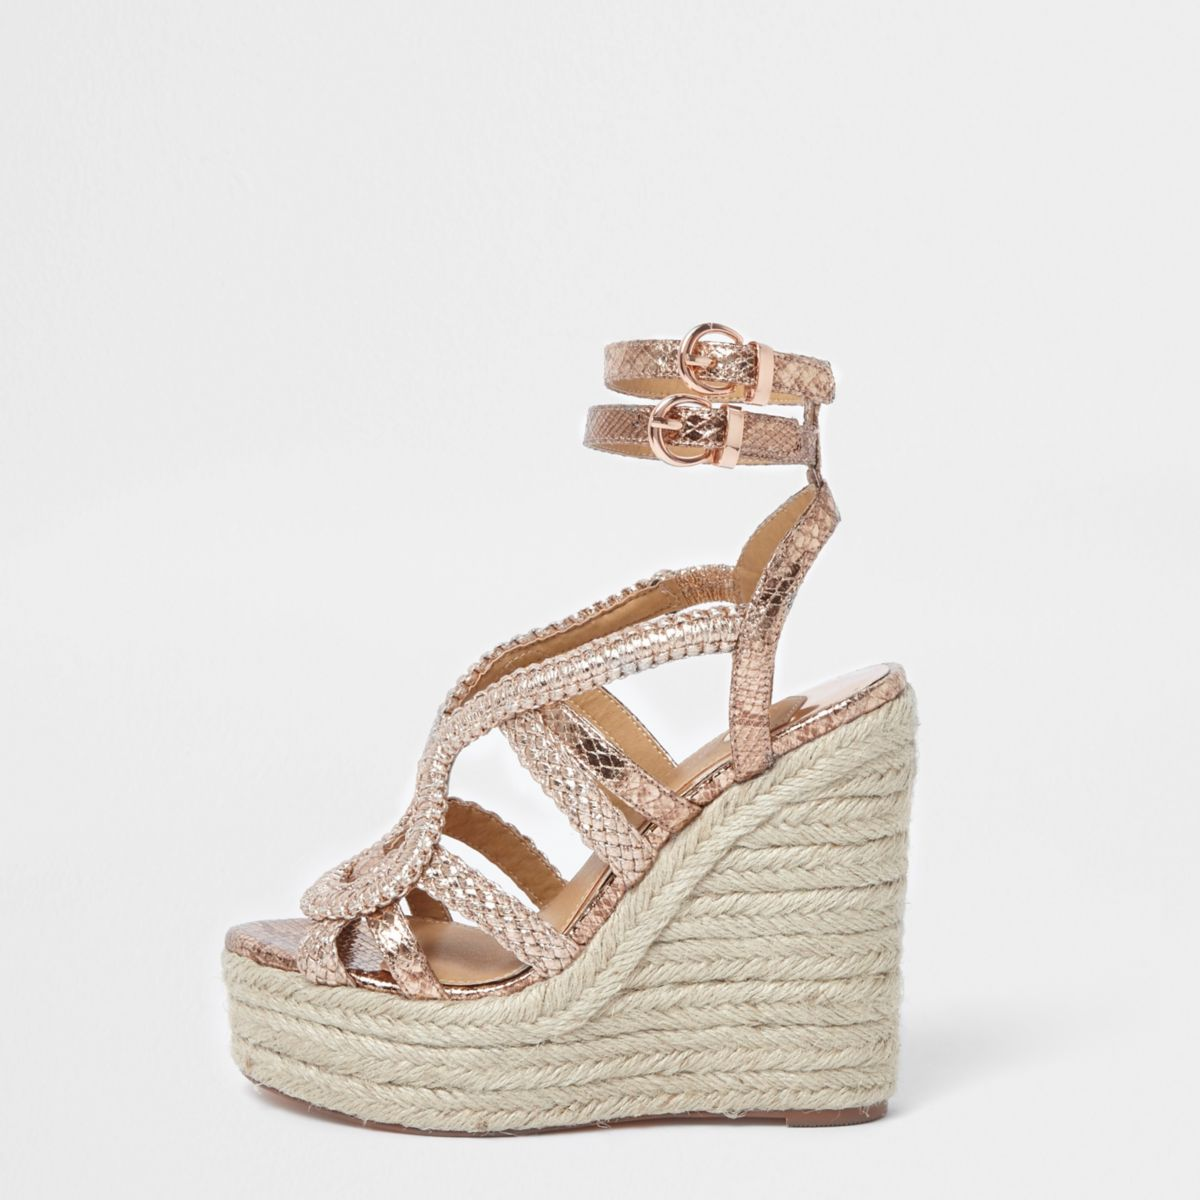 Rose gold metallic braided espadrille wedges